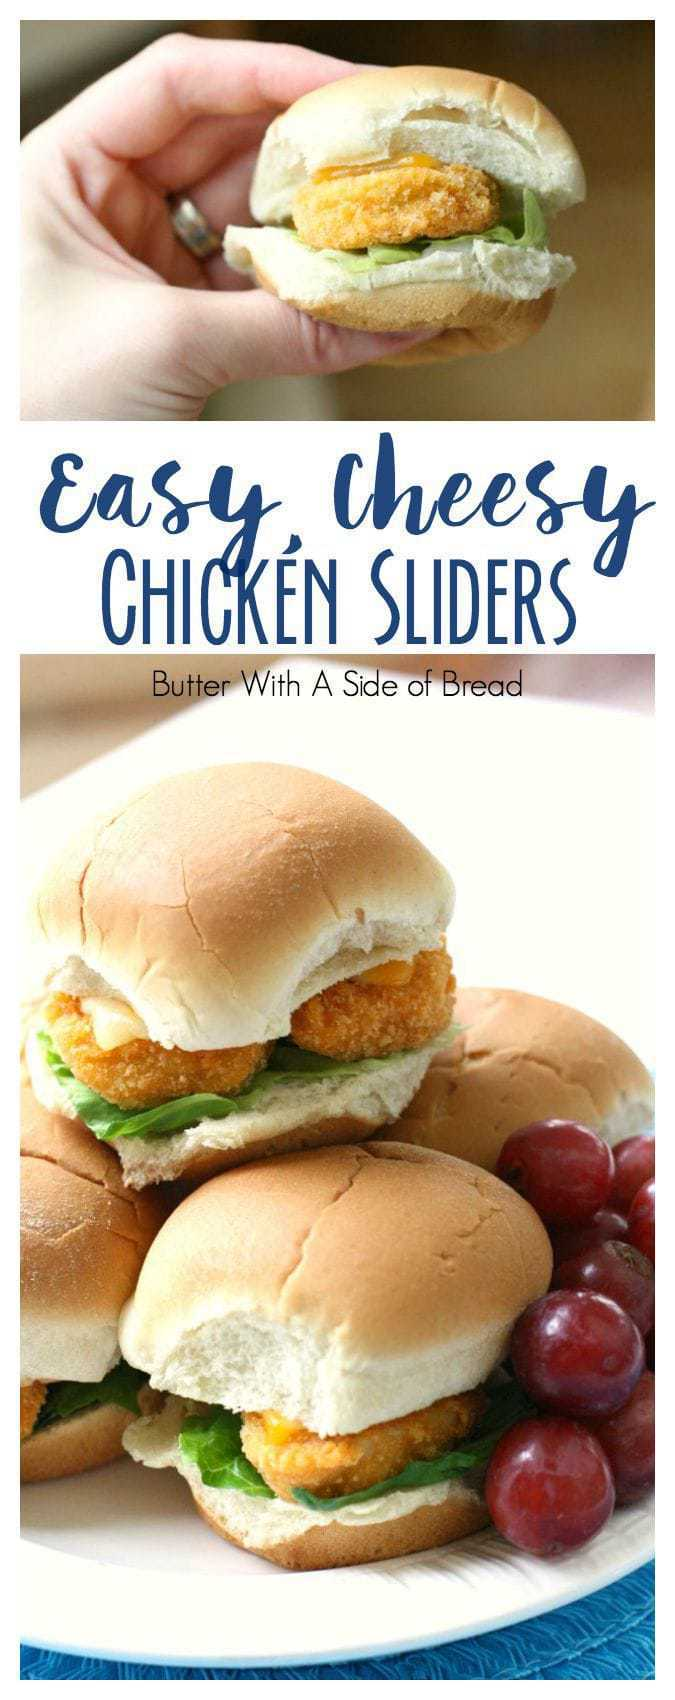 Easy Cheesy Chicken Sliders - Butter With A Side of Bread